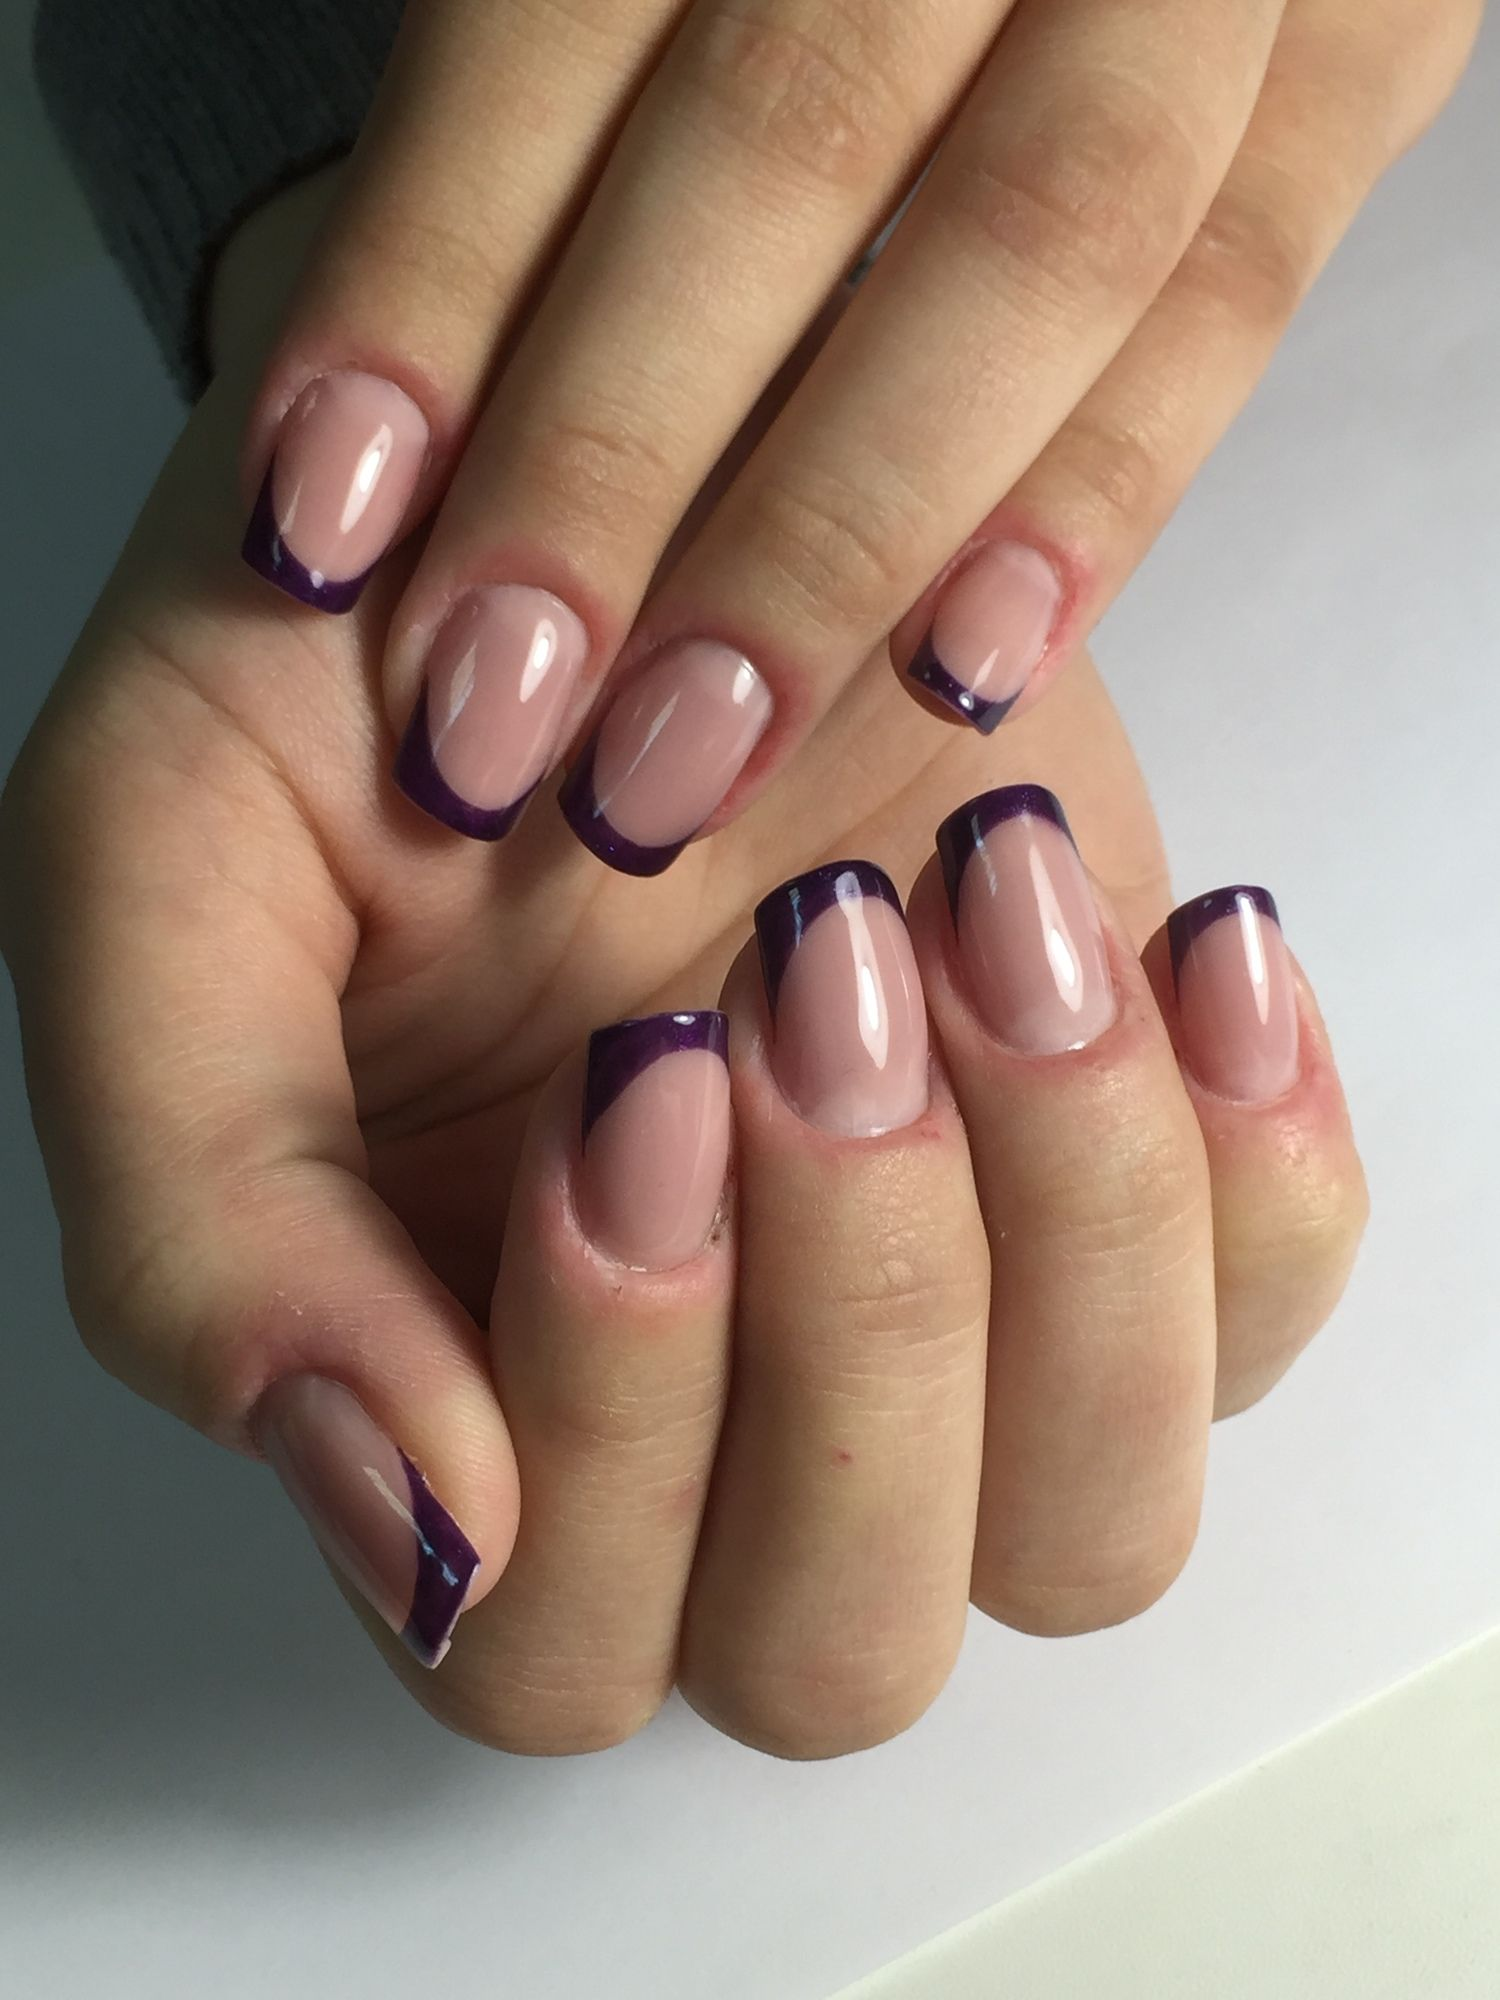 Gel nail extensions with french tips done using free hand. Soft ...